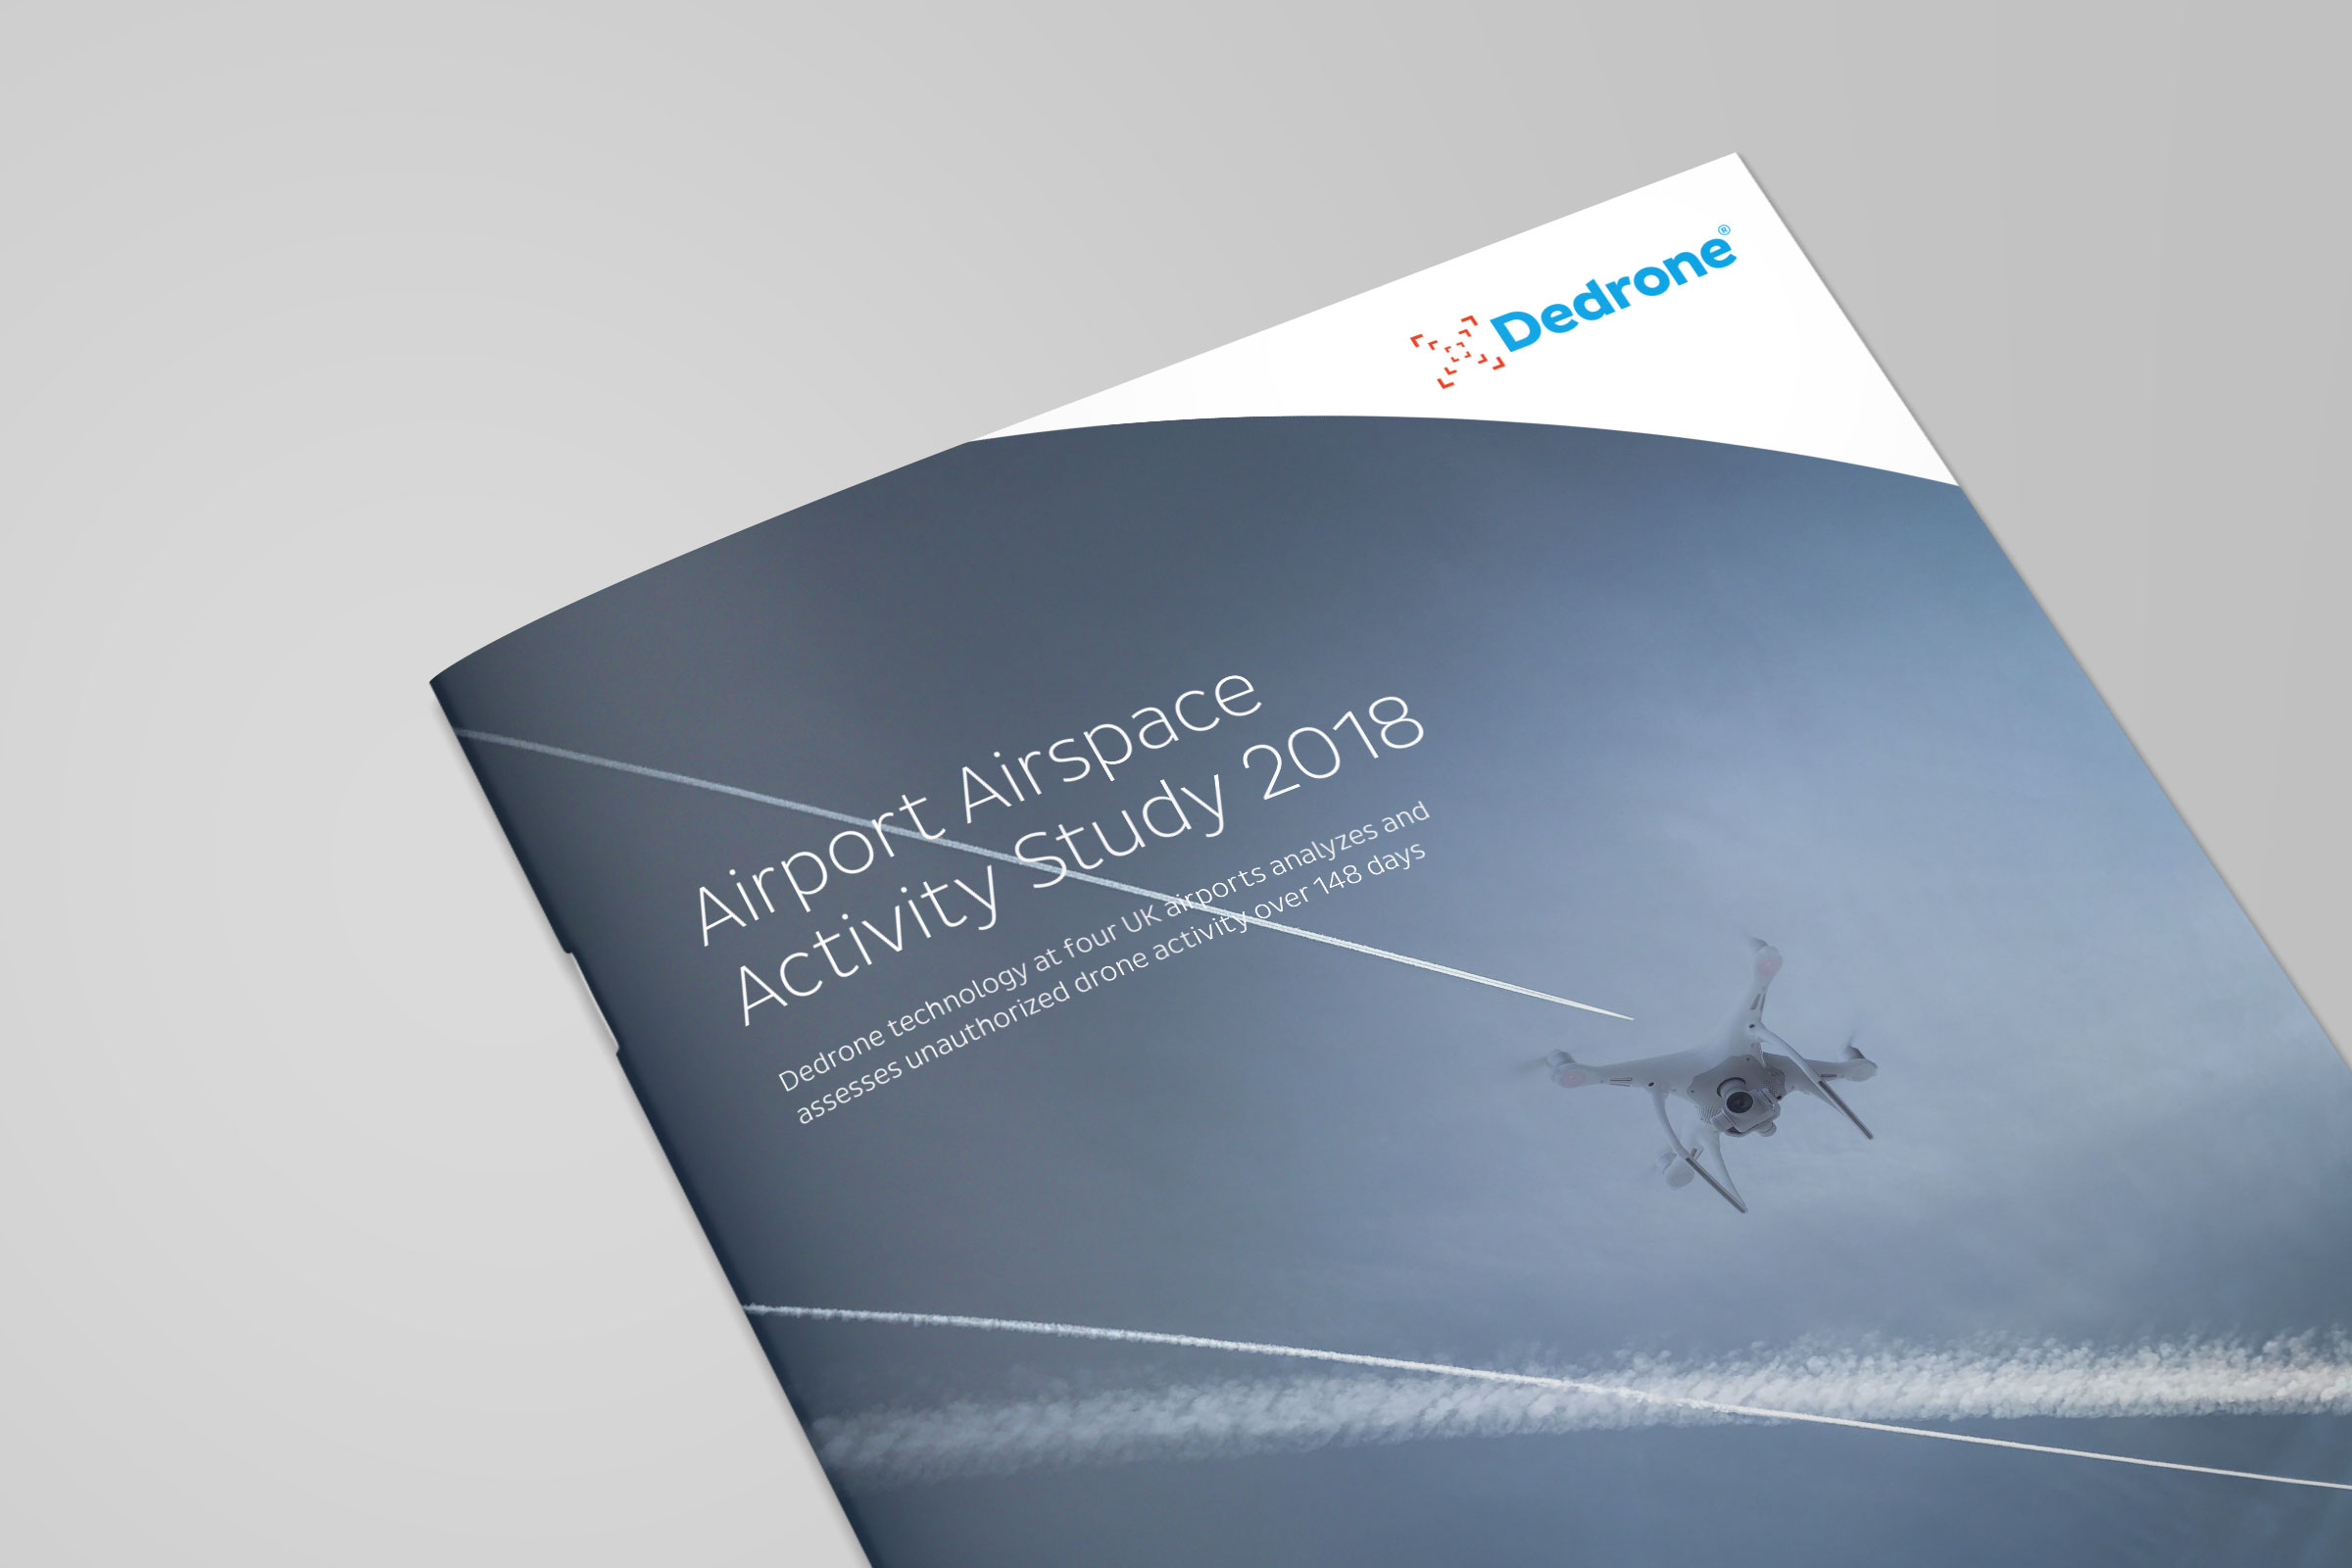 dedrone-whitepaper-cover-big-airspace-activity-study